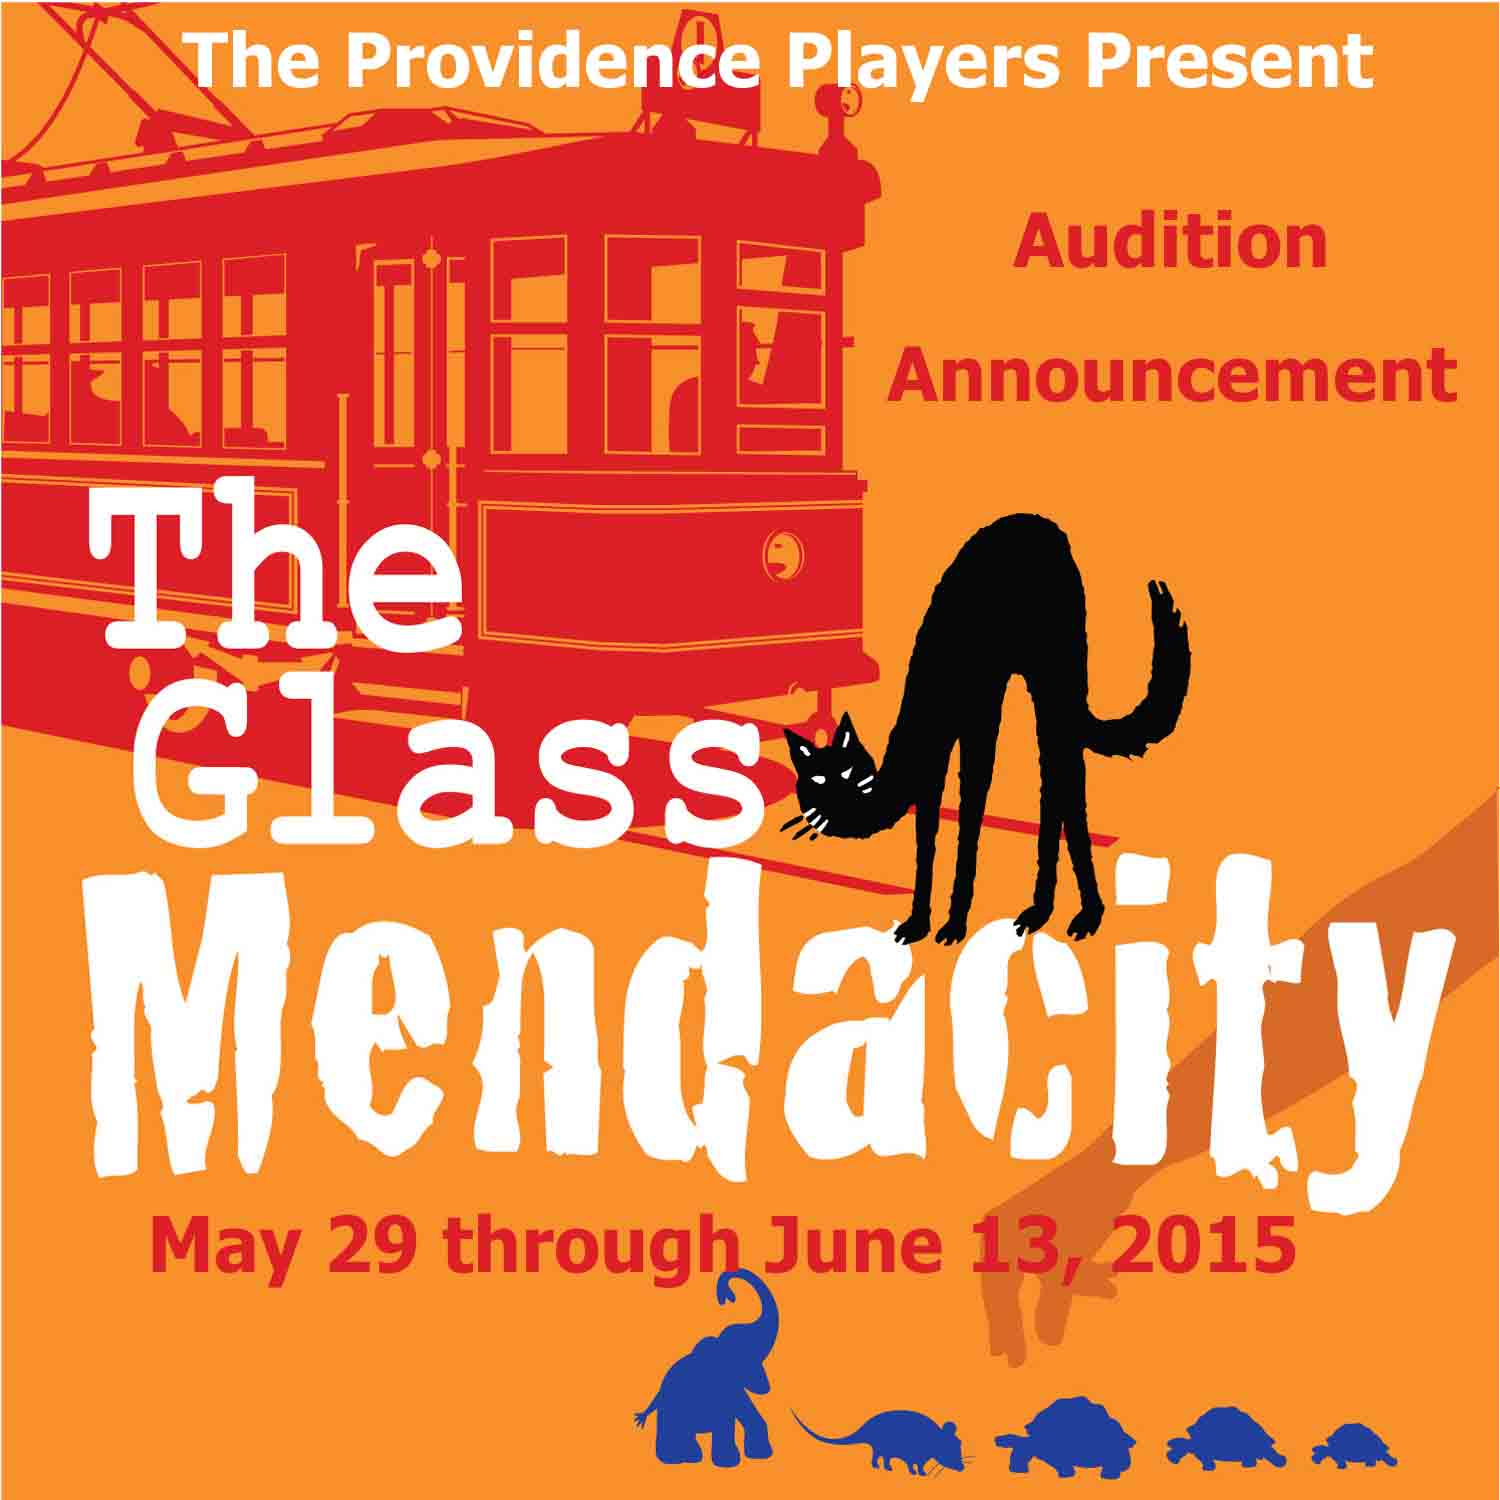 PPF TheGlassMendacity With Dates Audition Announcement 5x5